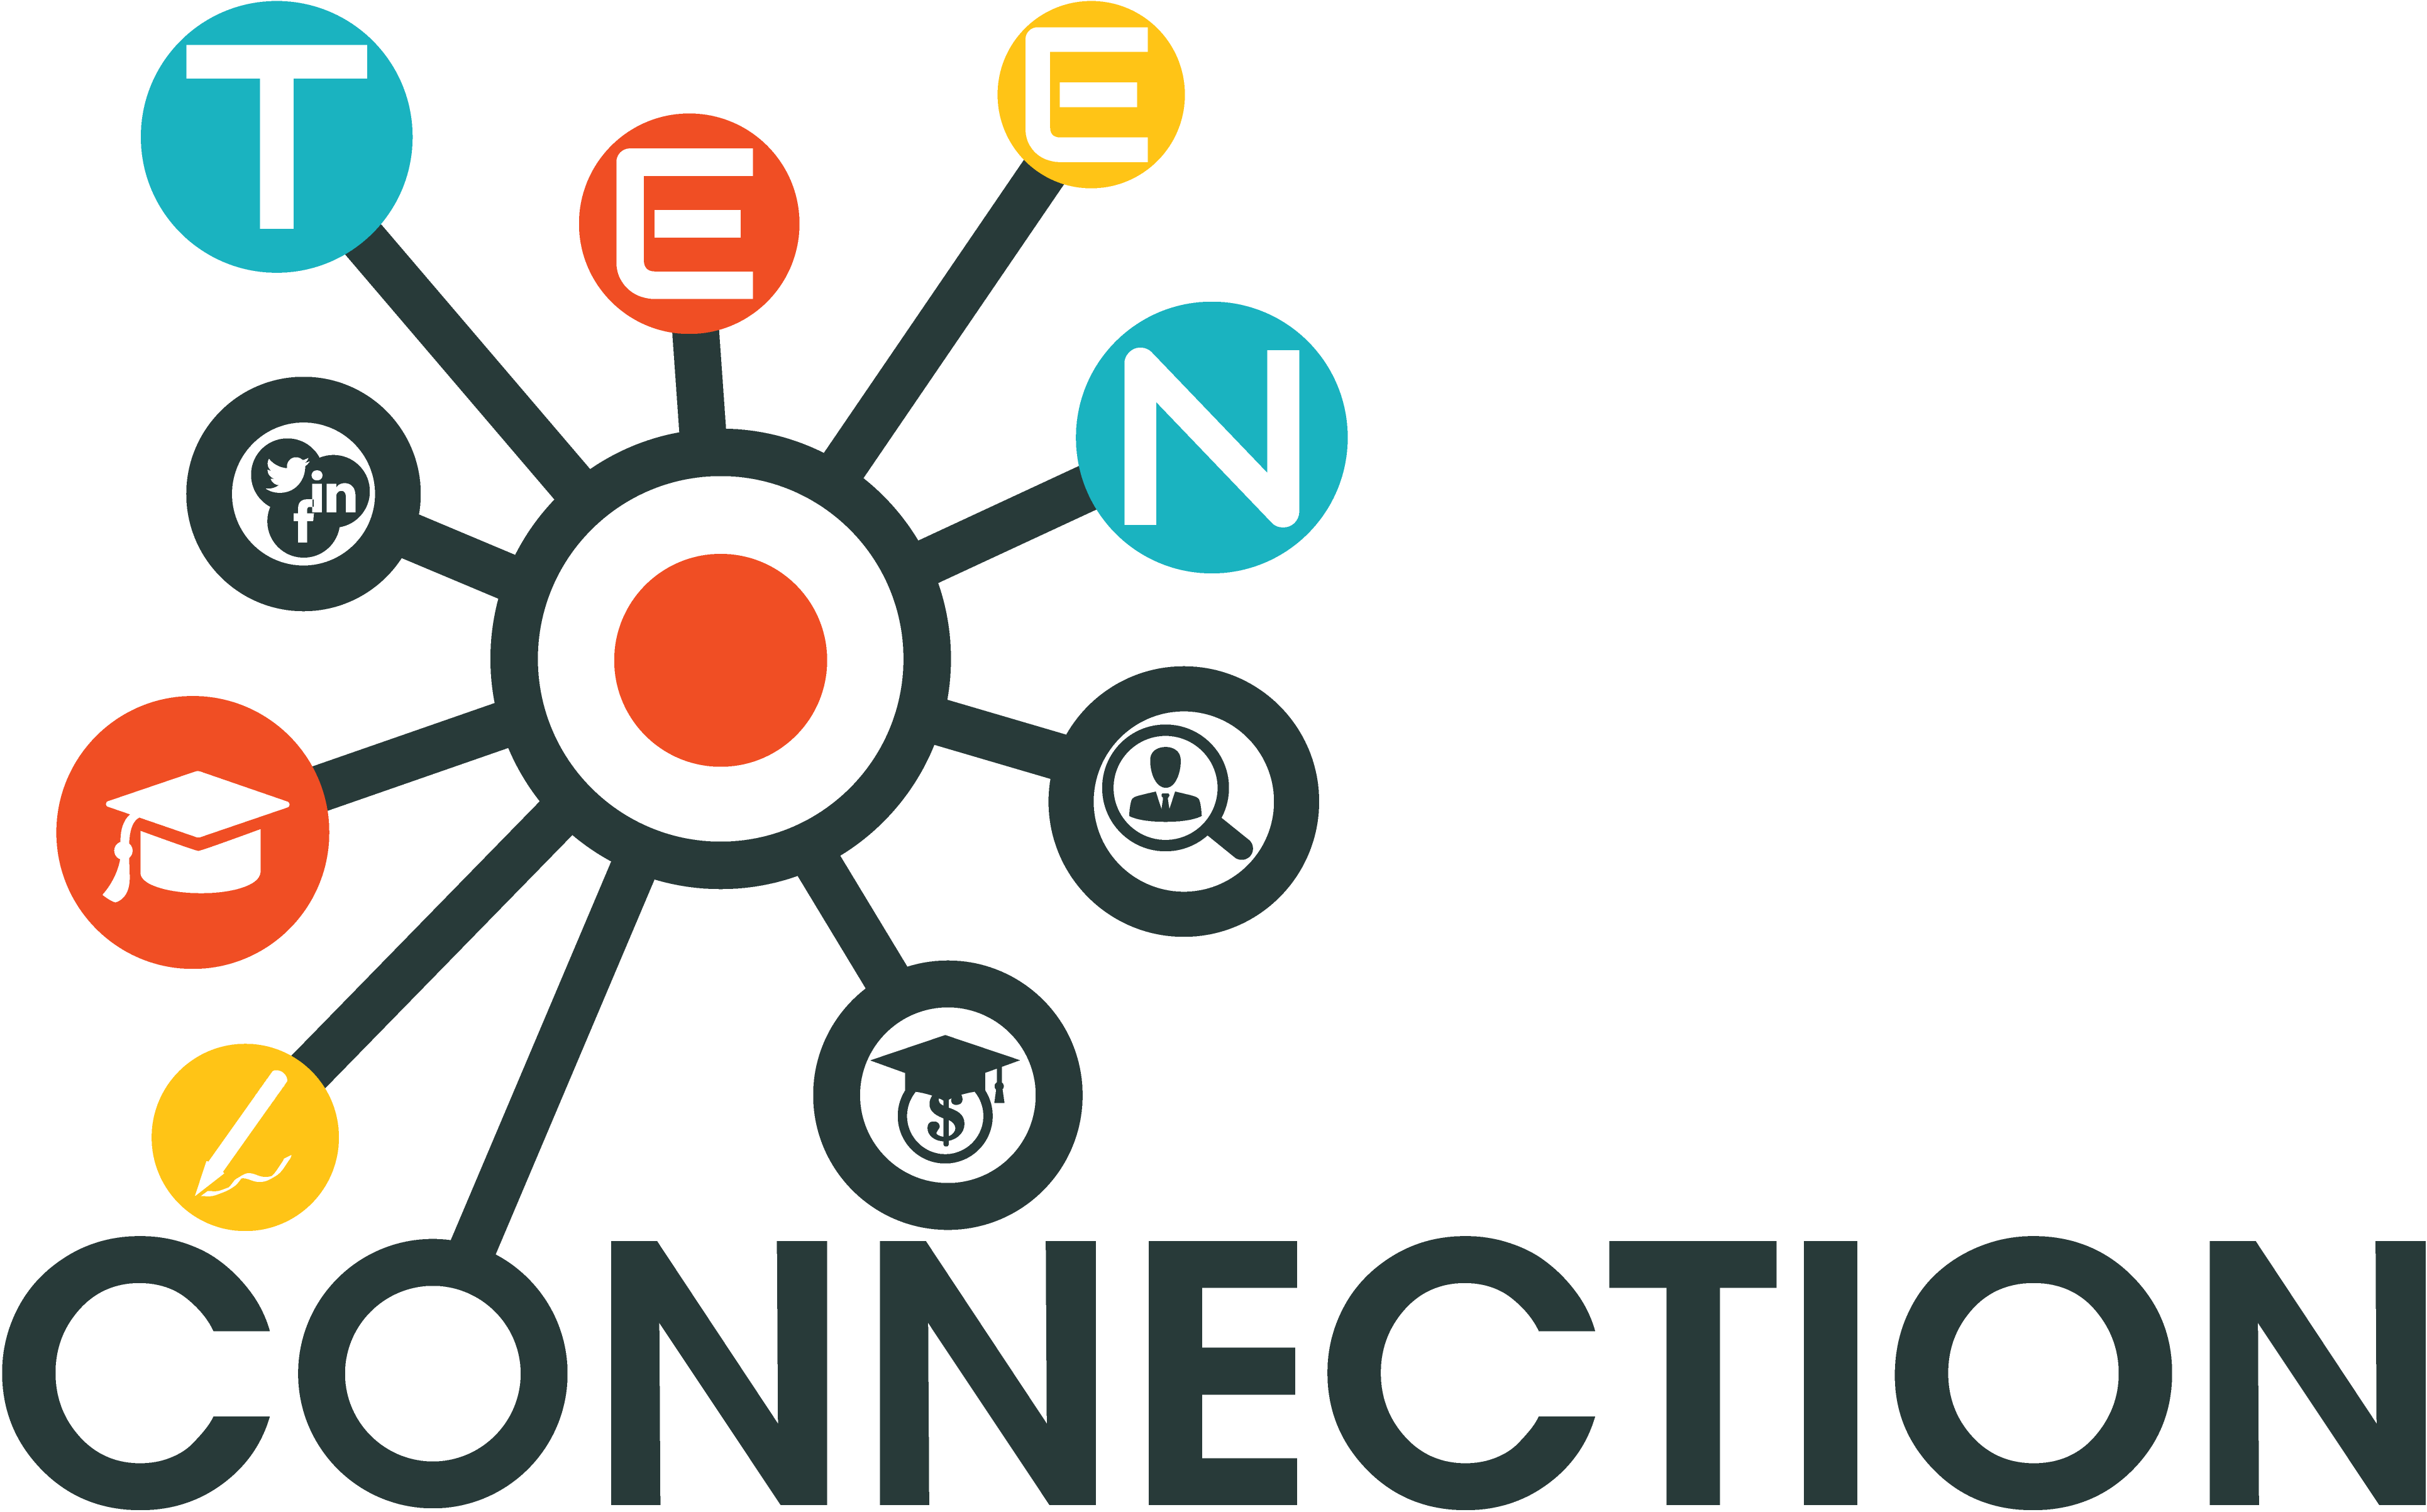 December Teen Connection Sessions are on the Move and will Focus on Teen Banking Basics and Becoming a Better Writer